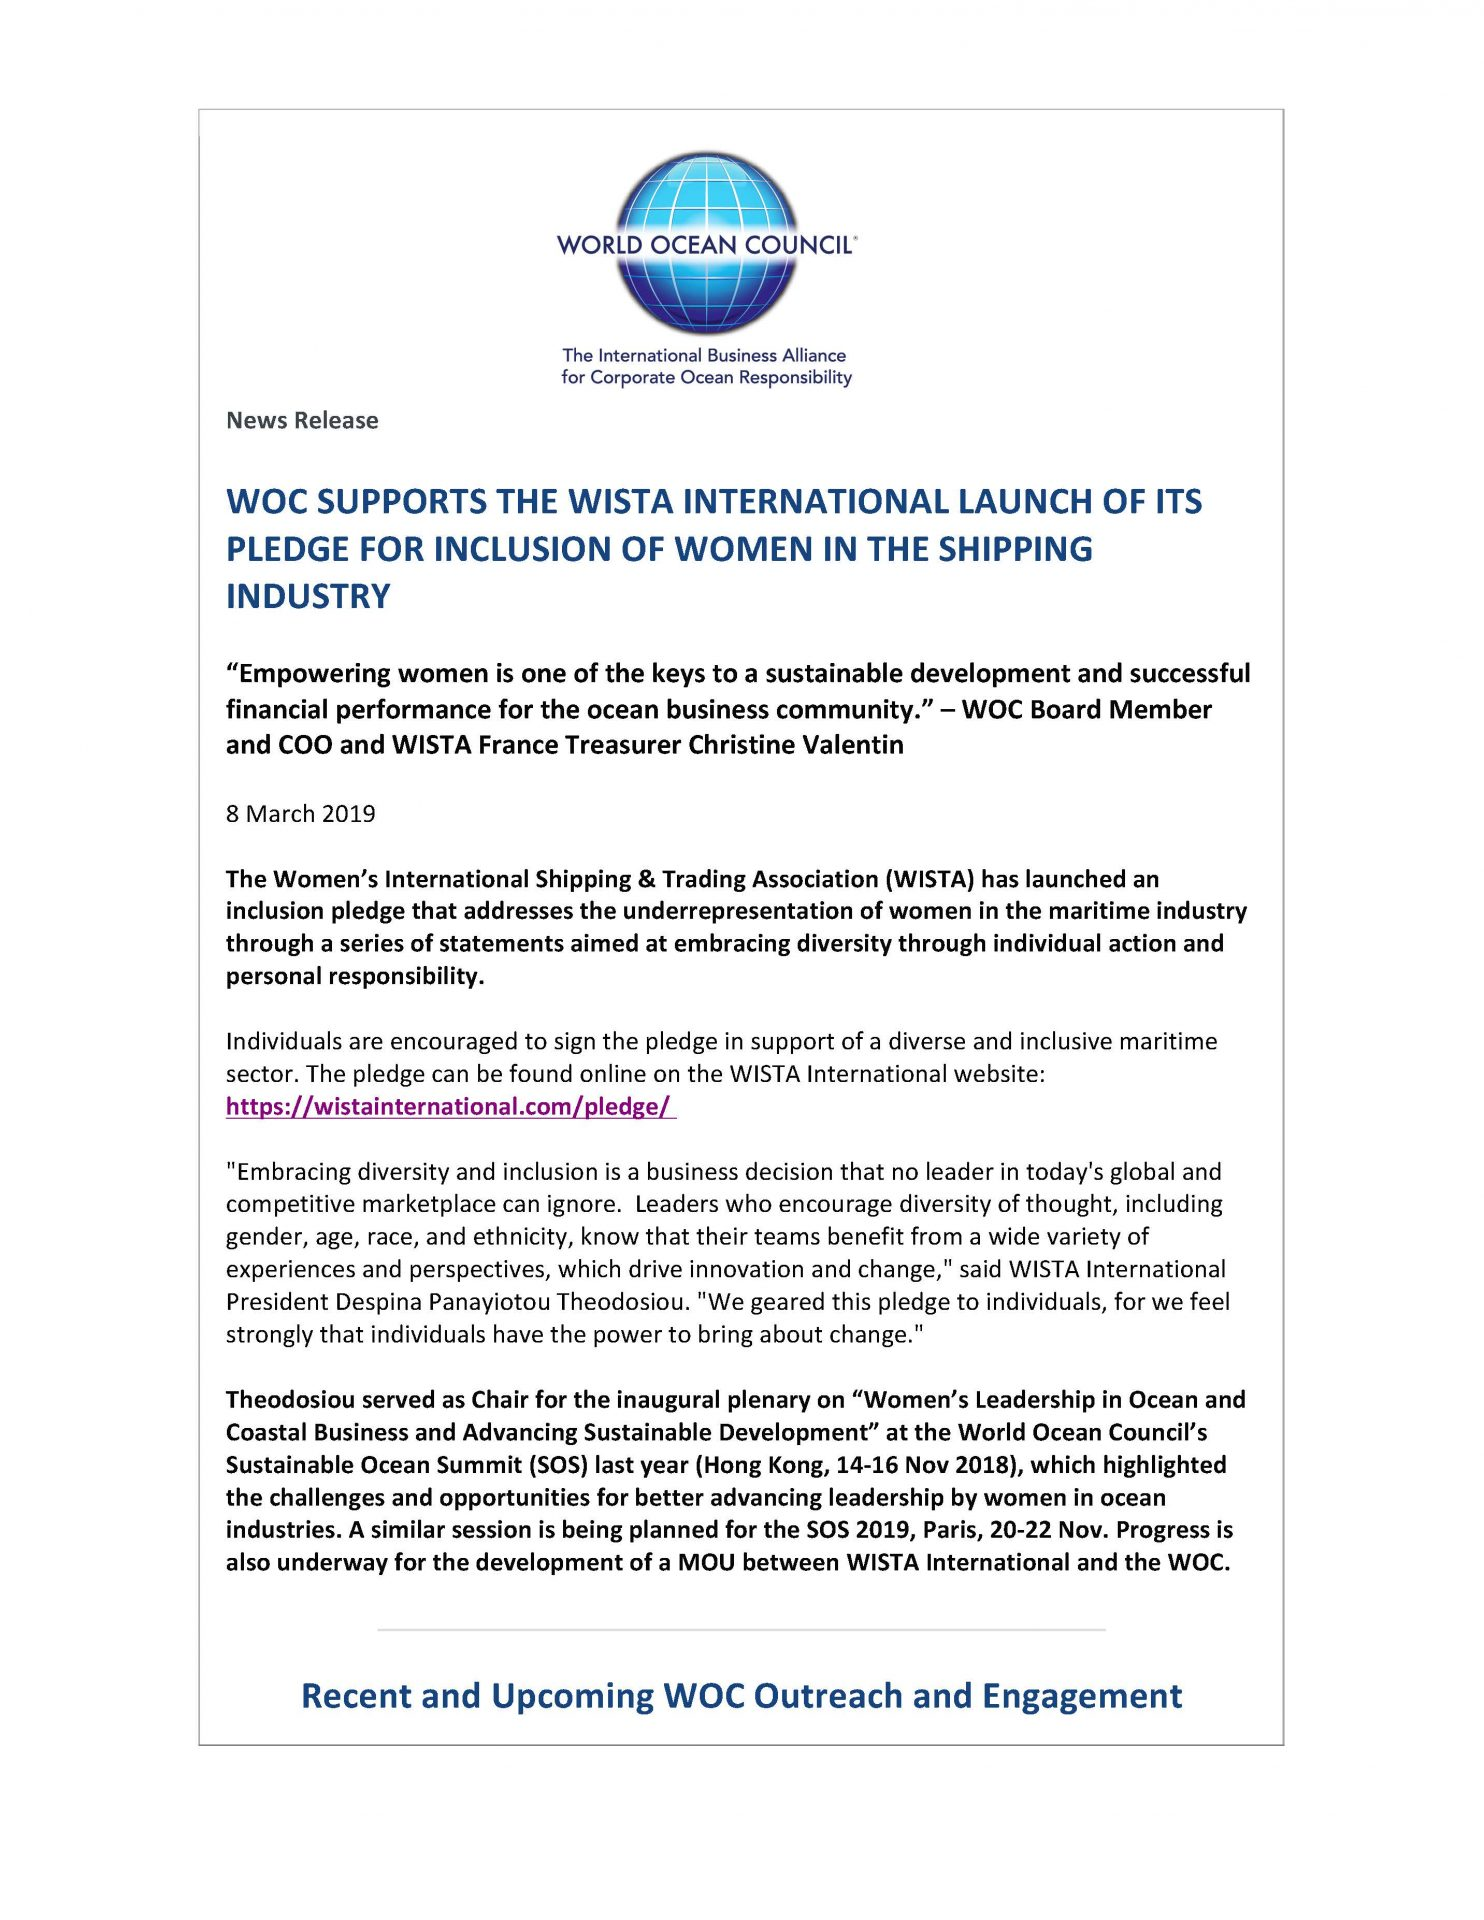 WOC Supports the WISTA International Launch of its Pledge for Inclusion of Women in the Shipping Industry - 8 March 2019